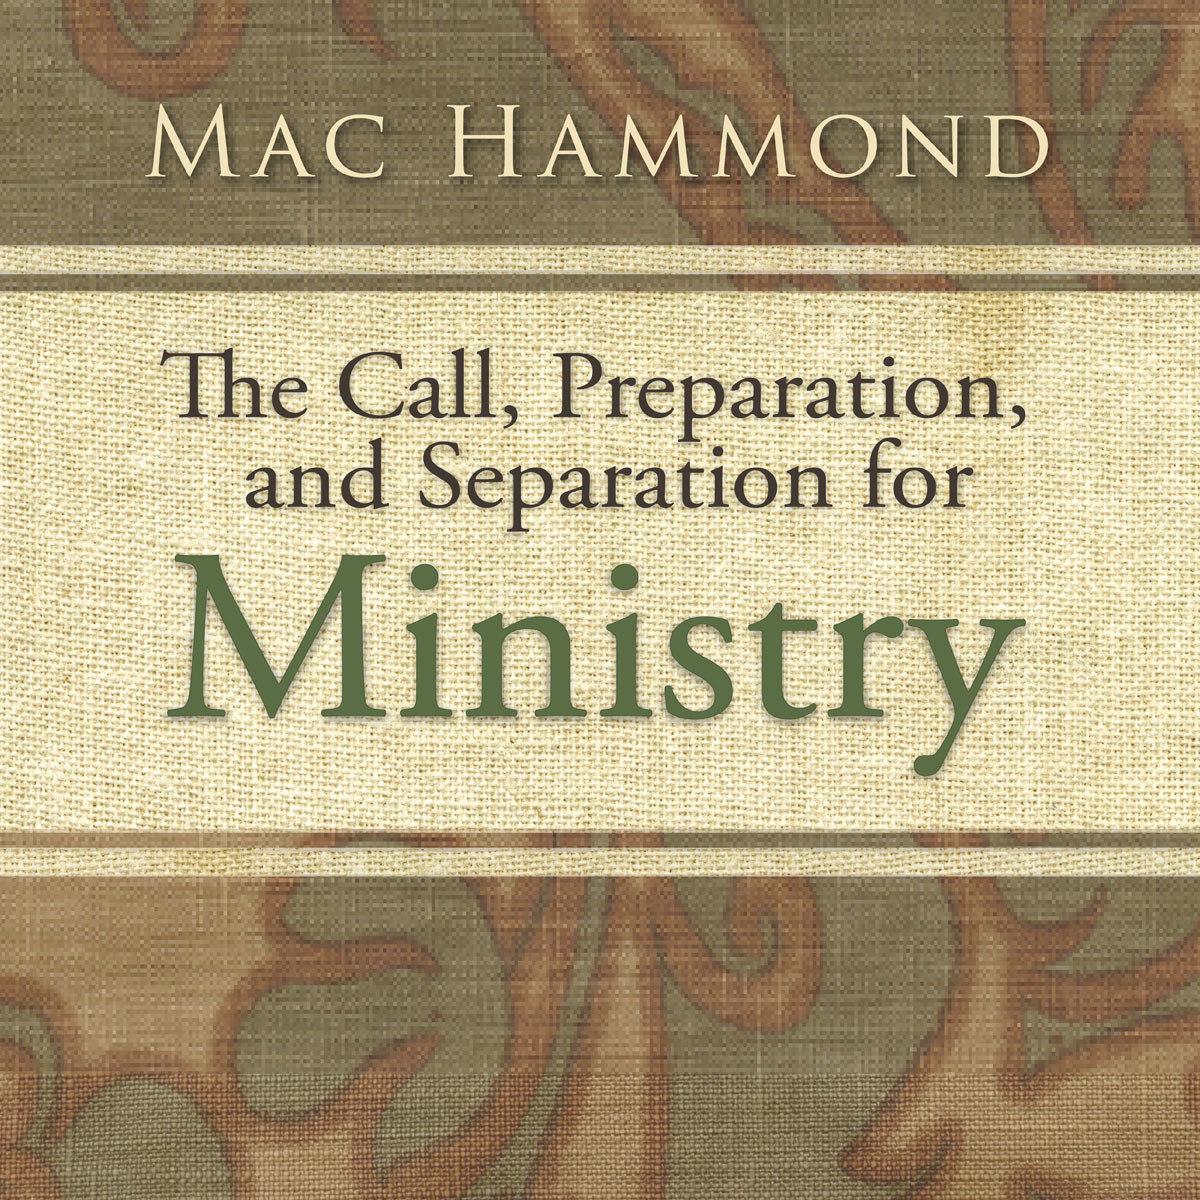 The Call, Preparation, and Separation for Ministry by Mac Hammond